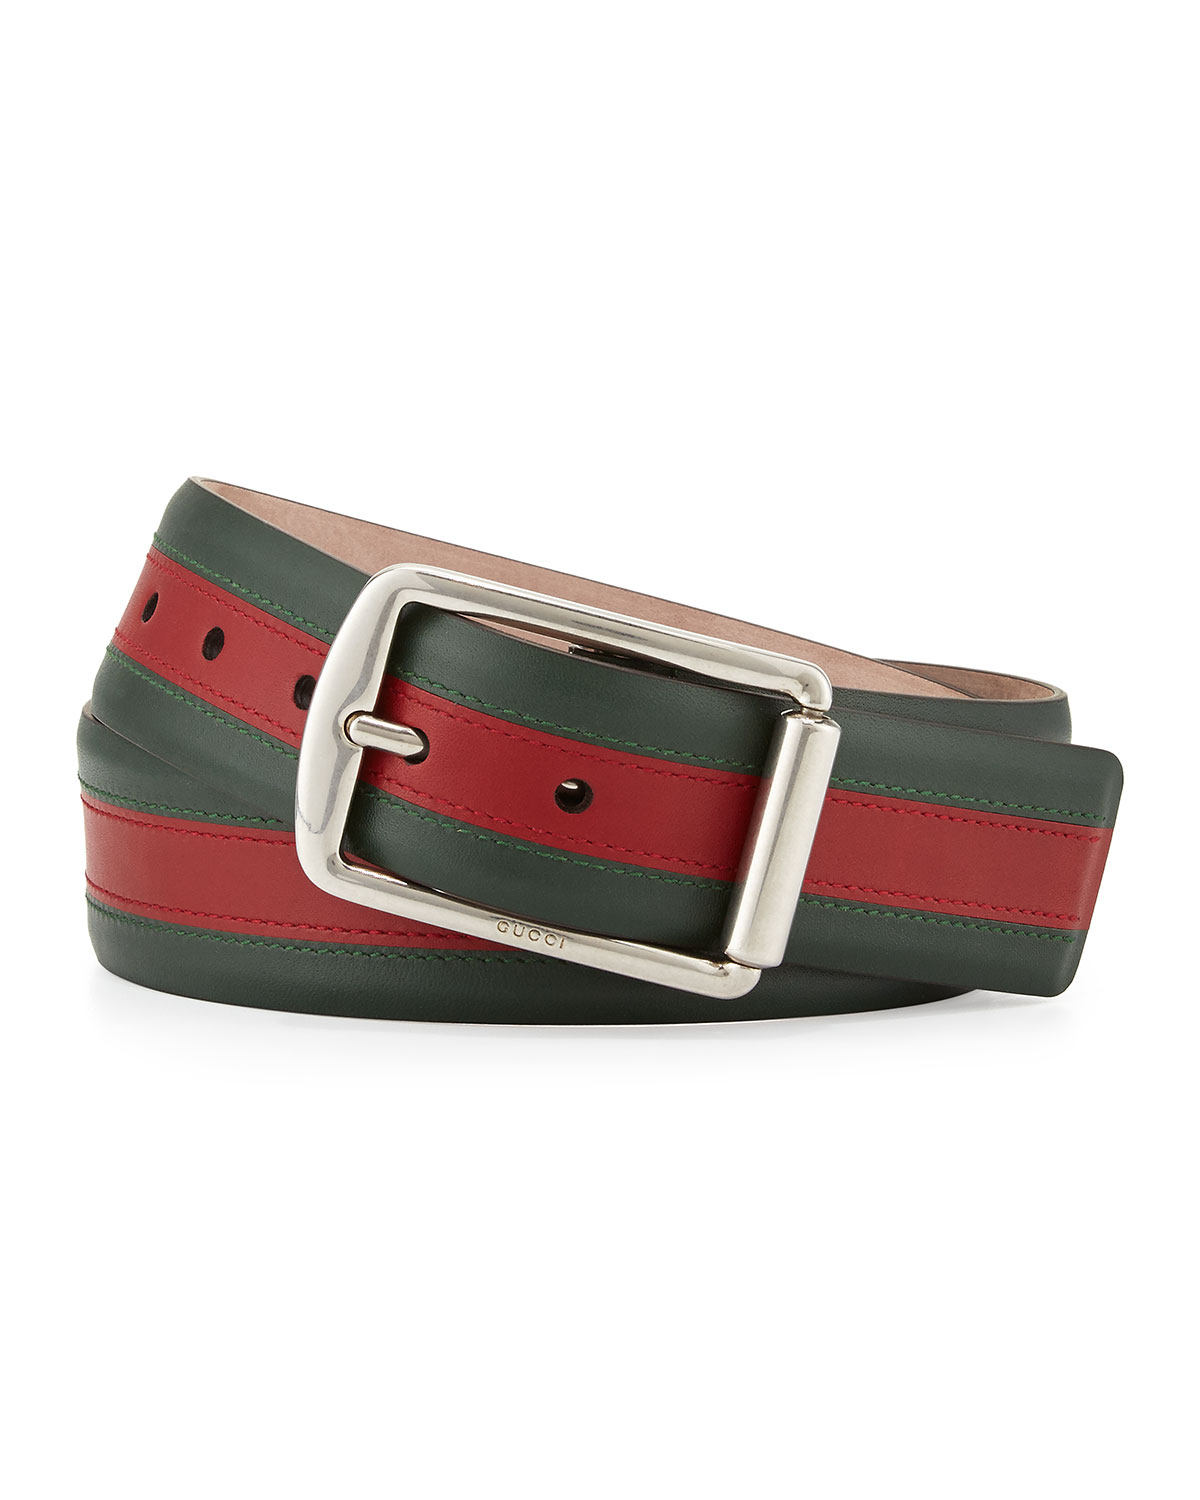 6962fd0368aa1f Gucci Signature Web Leather Belt in Green for Men - Lyst